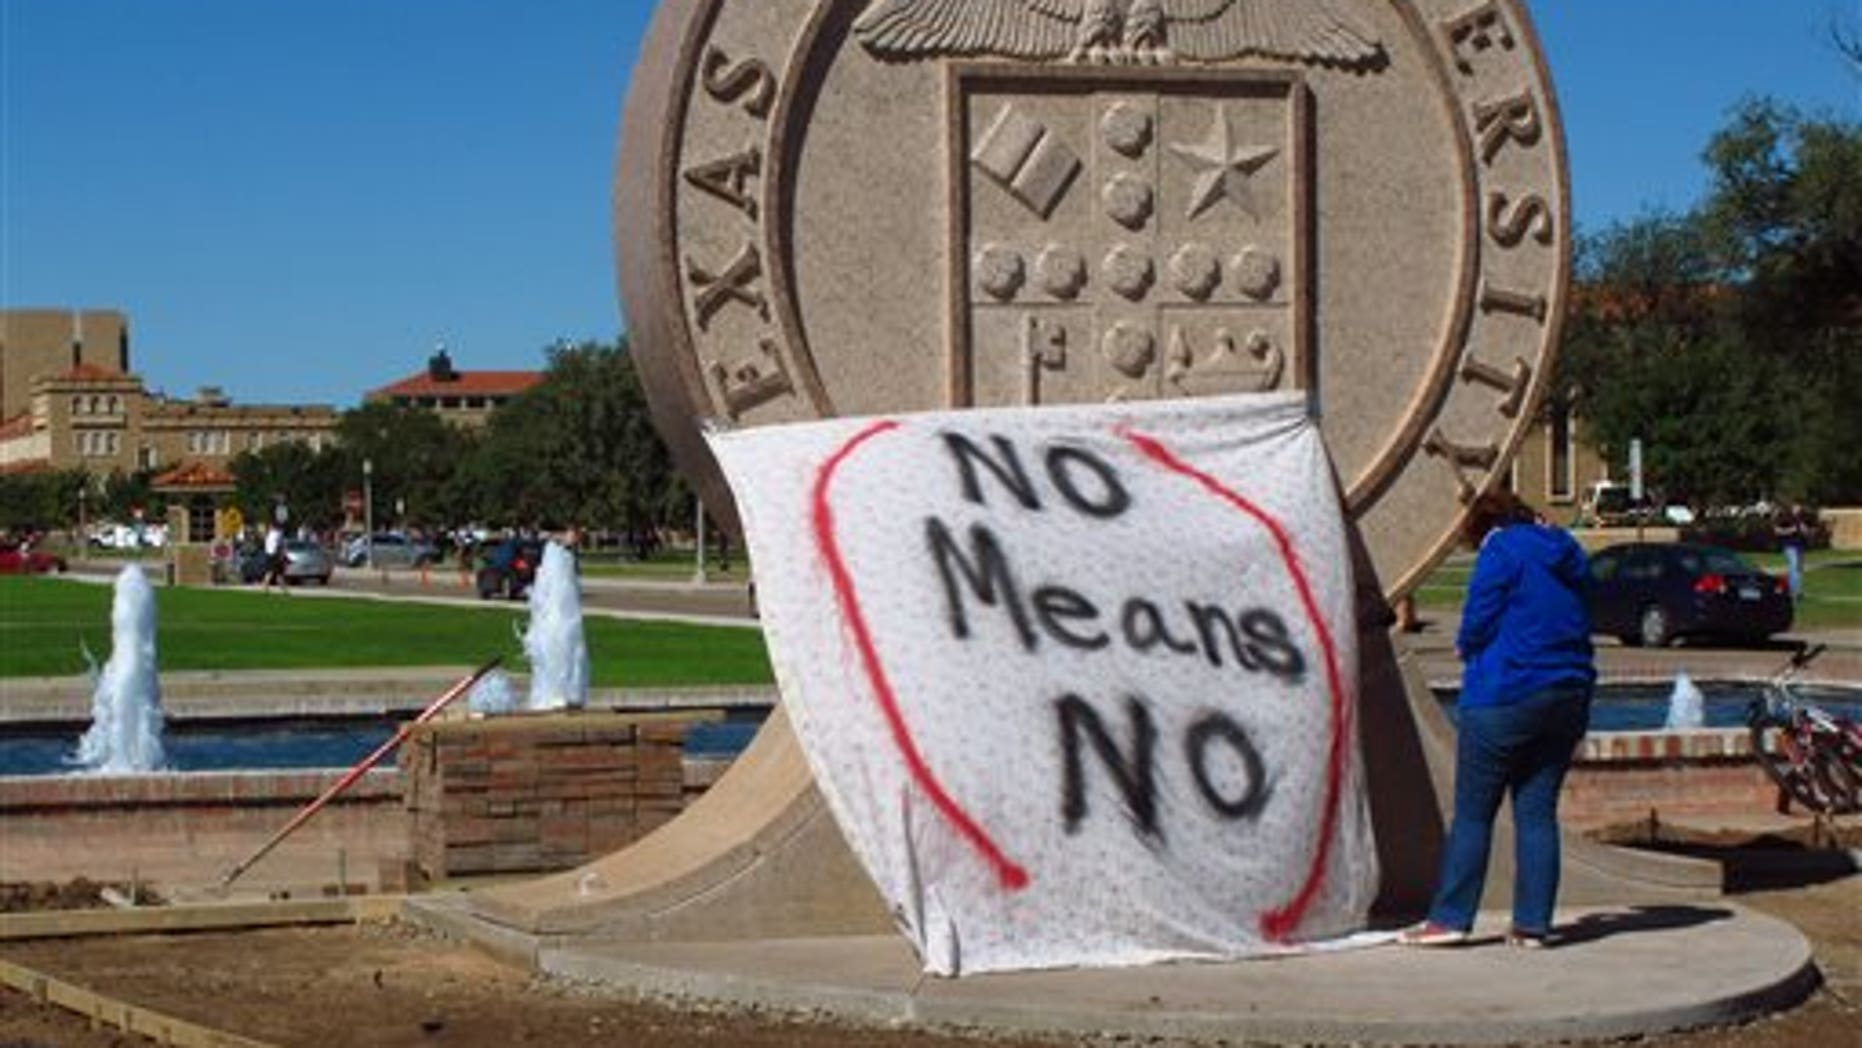 """FILE - In this Wednesday, Oct. 1, 2014 file photo, Texas Tech freshman Regan Elder helps drape a bed sheet with the message """"No Means No"""" over the university's seal at the Lubbock, Texas campus to protest what students say is a """"rape culture"""" on campus. (AP Photo/Betsy Blaney)"""